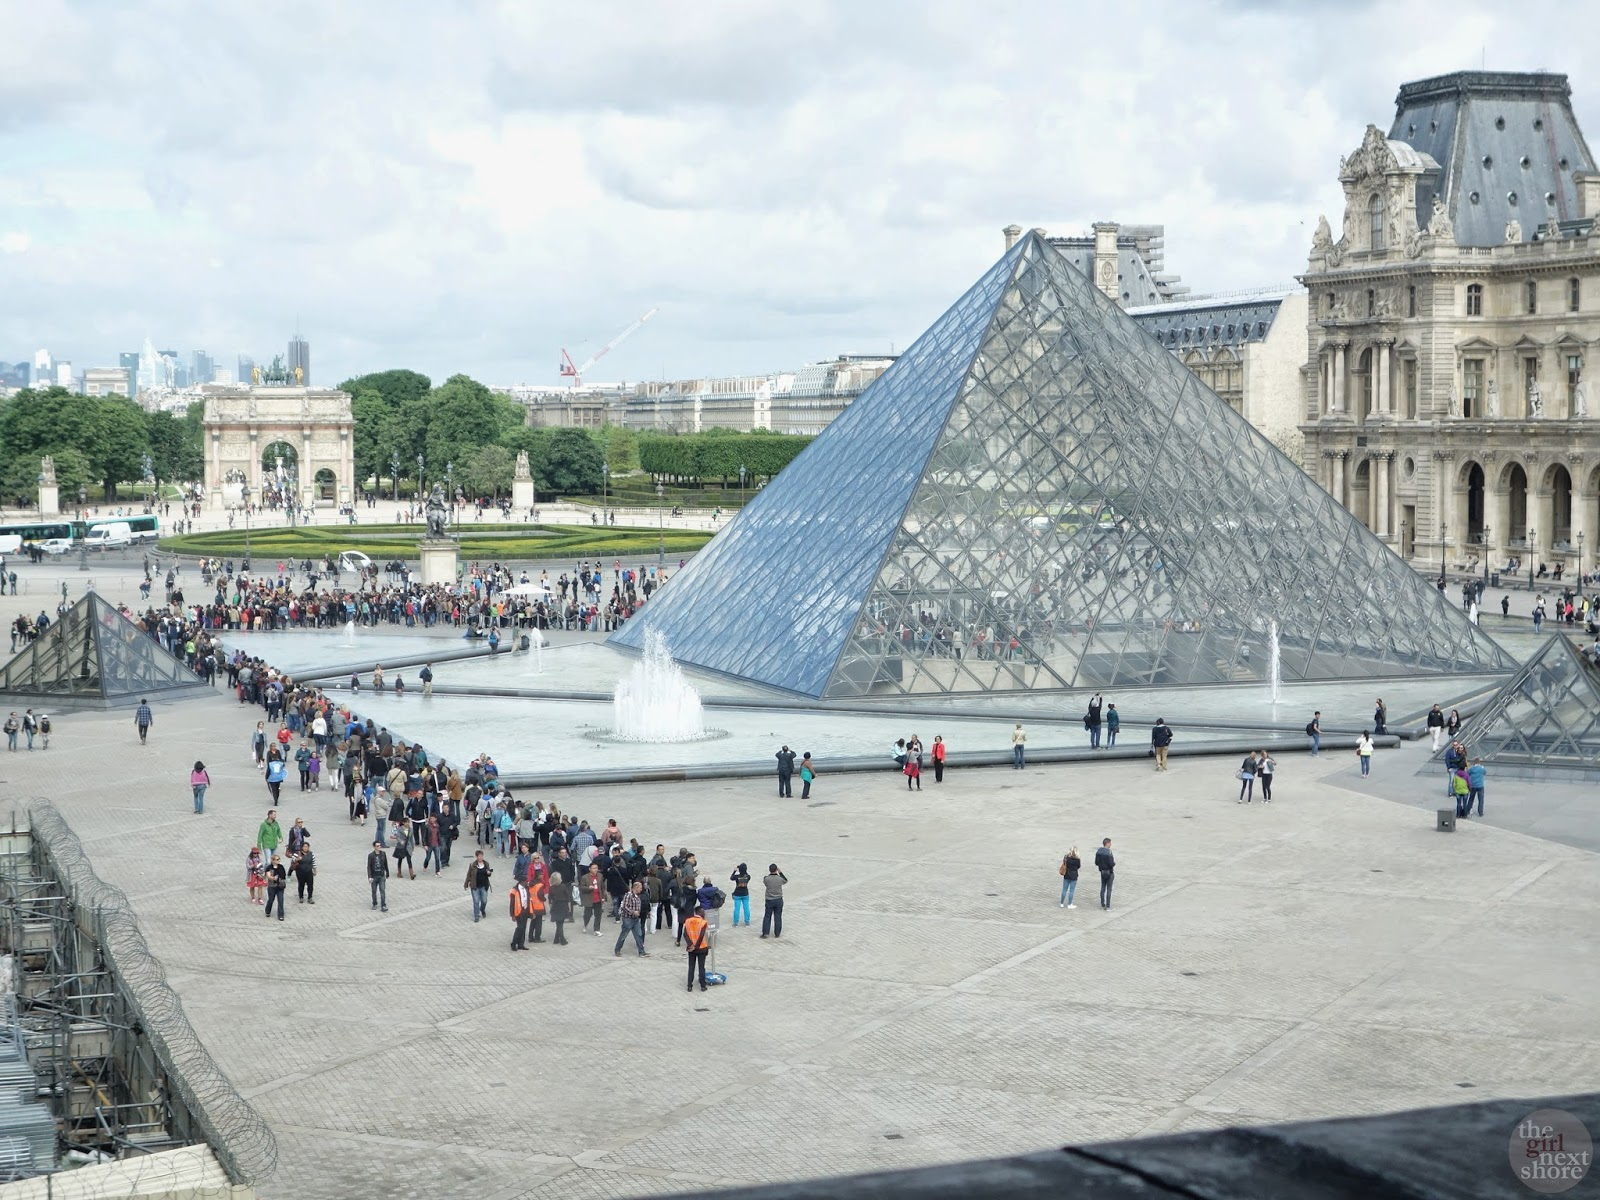 The Louvre by The Girl Next Shore